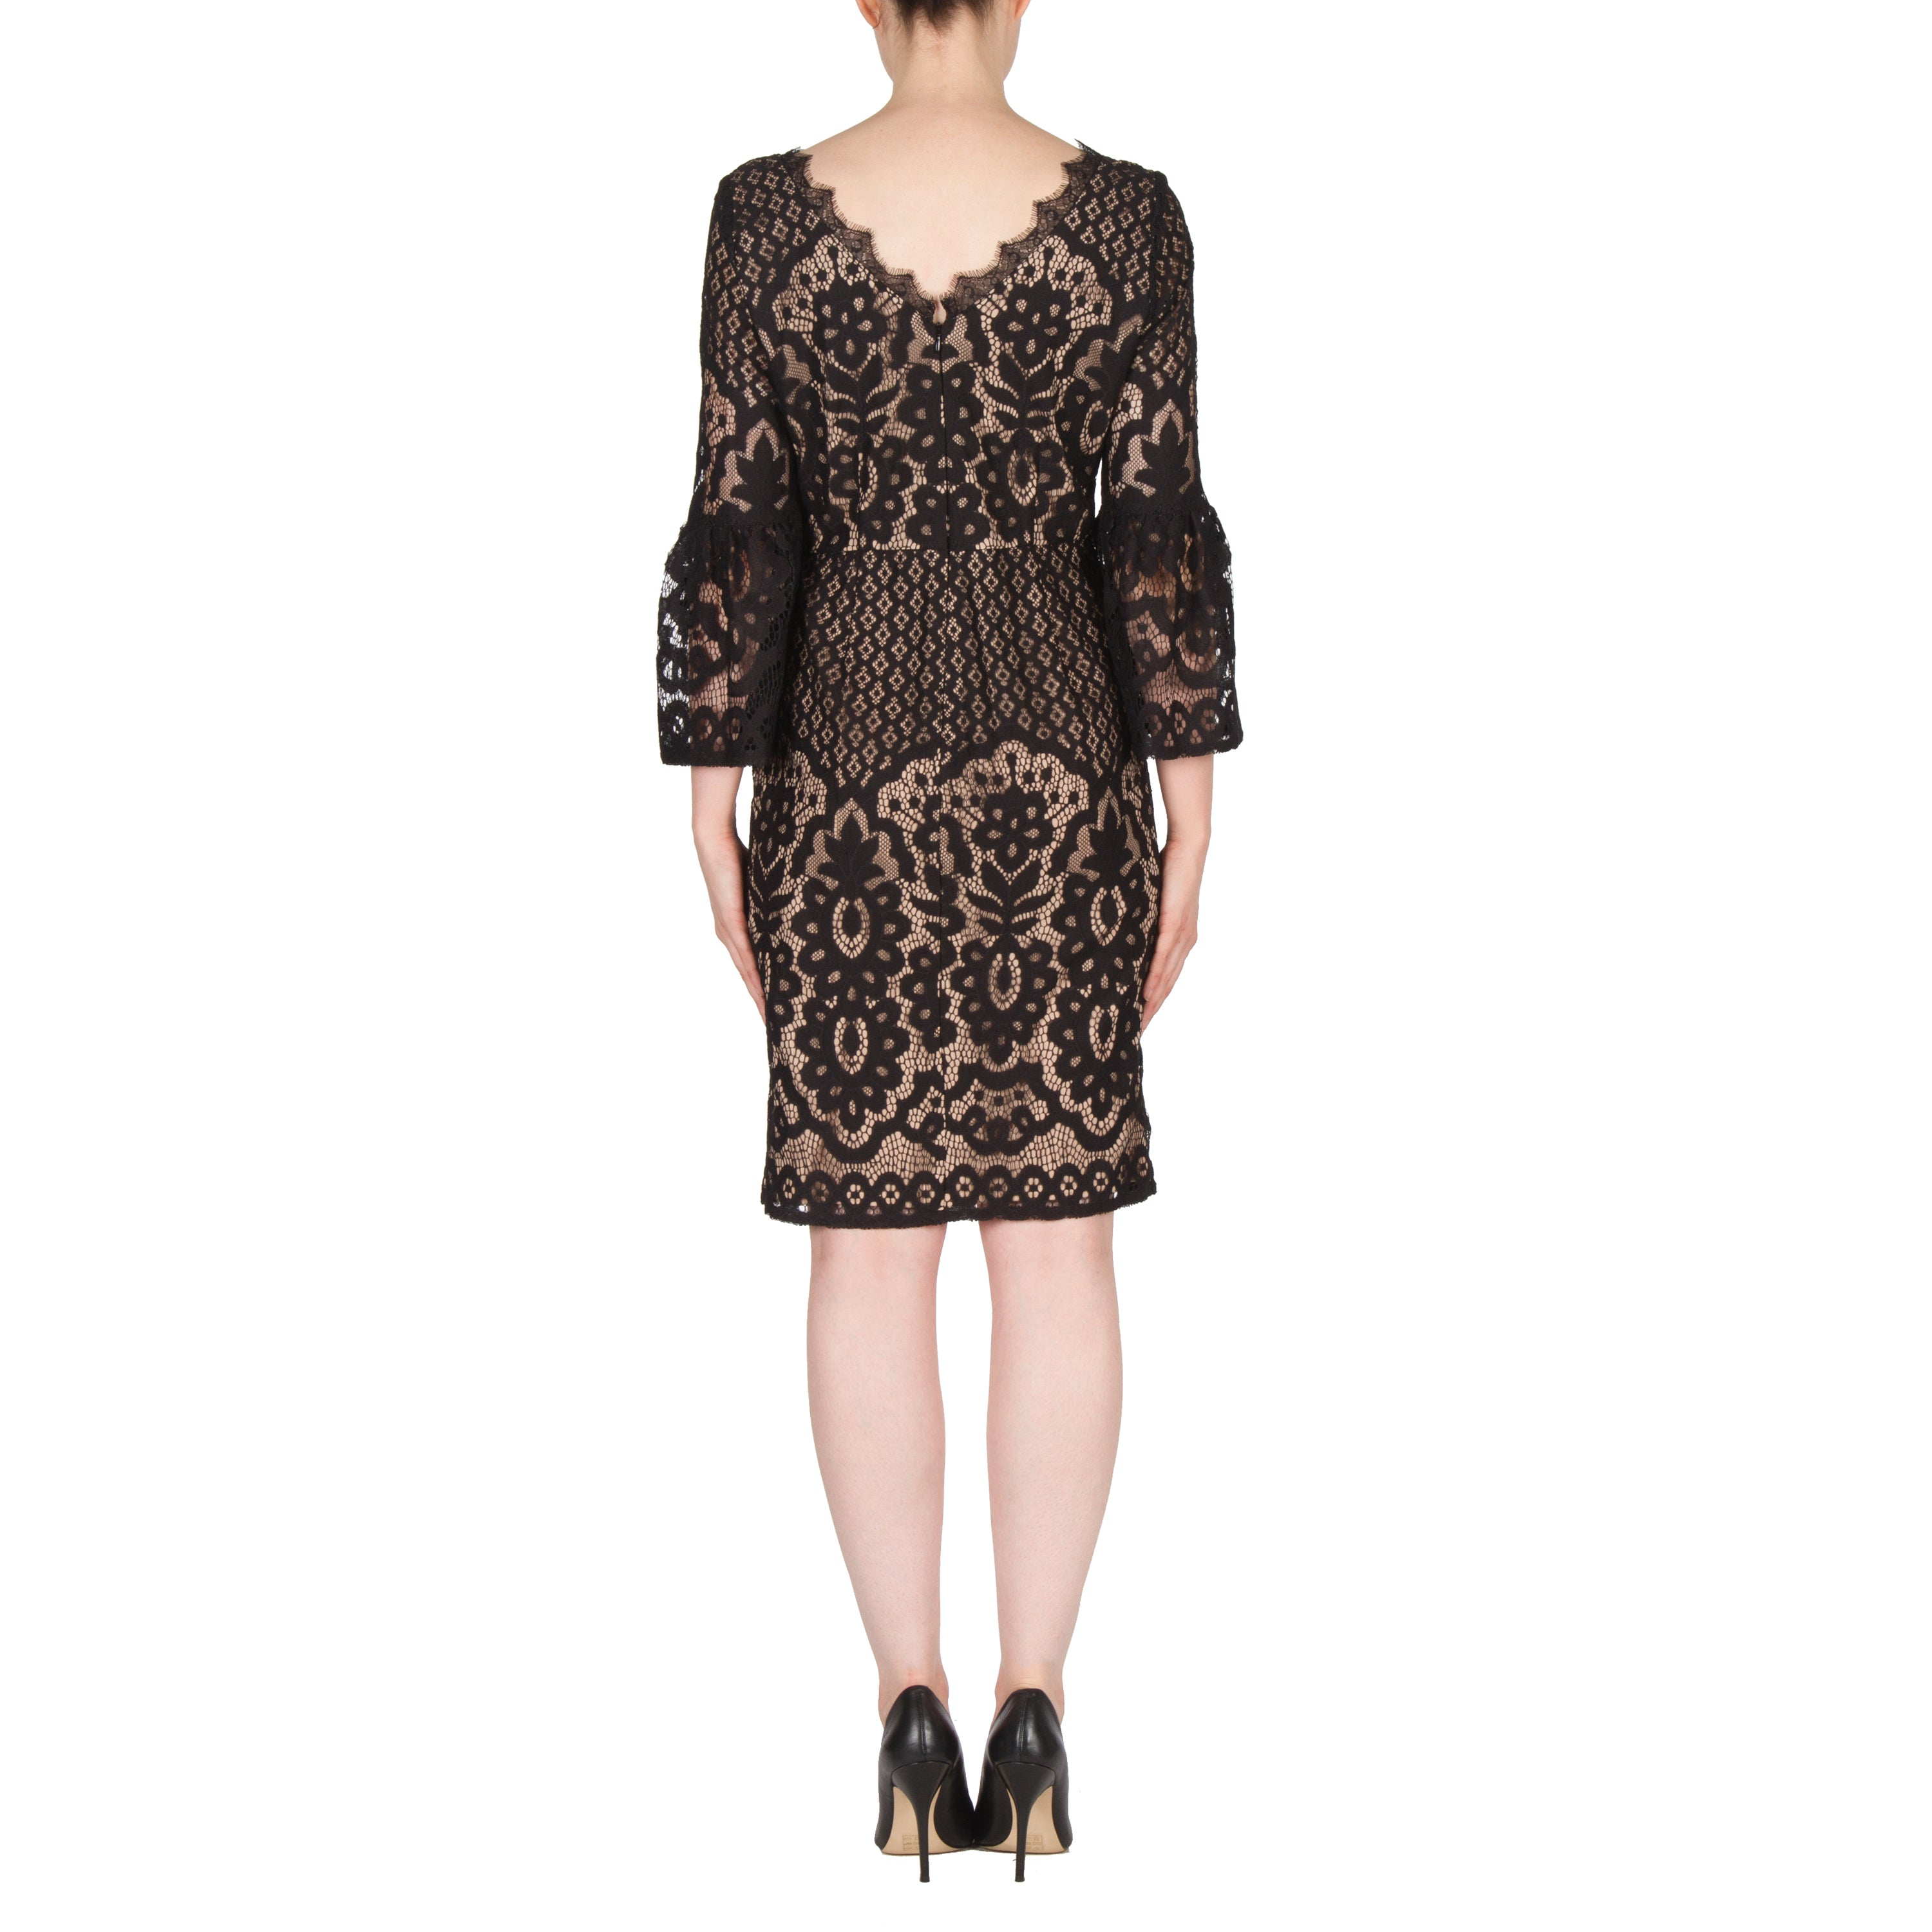 4276c38515 ... Joseph Ribkoff 173531 Lace Dress - Villique